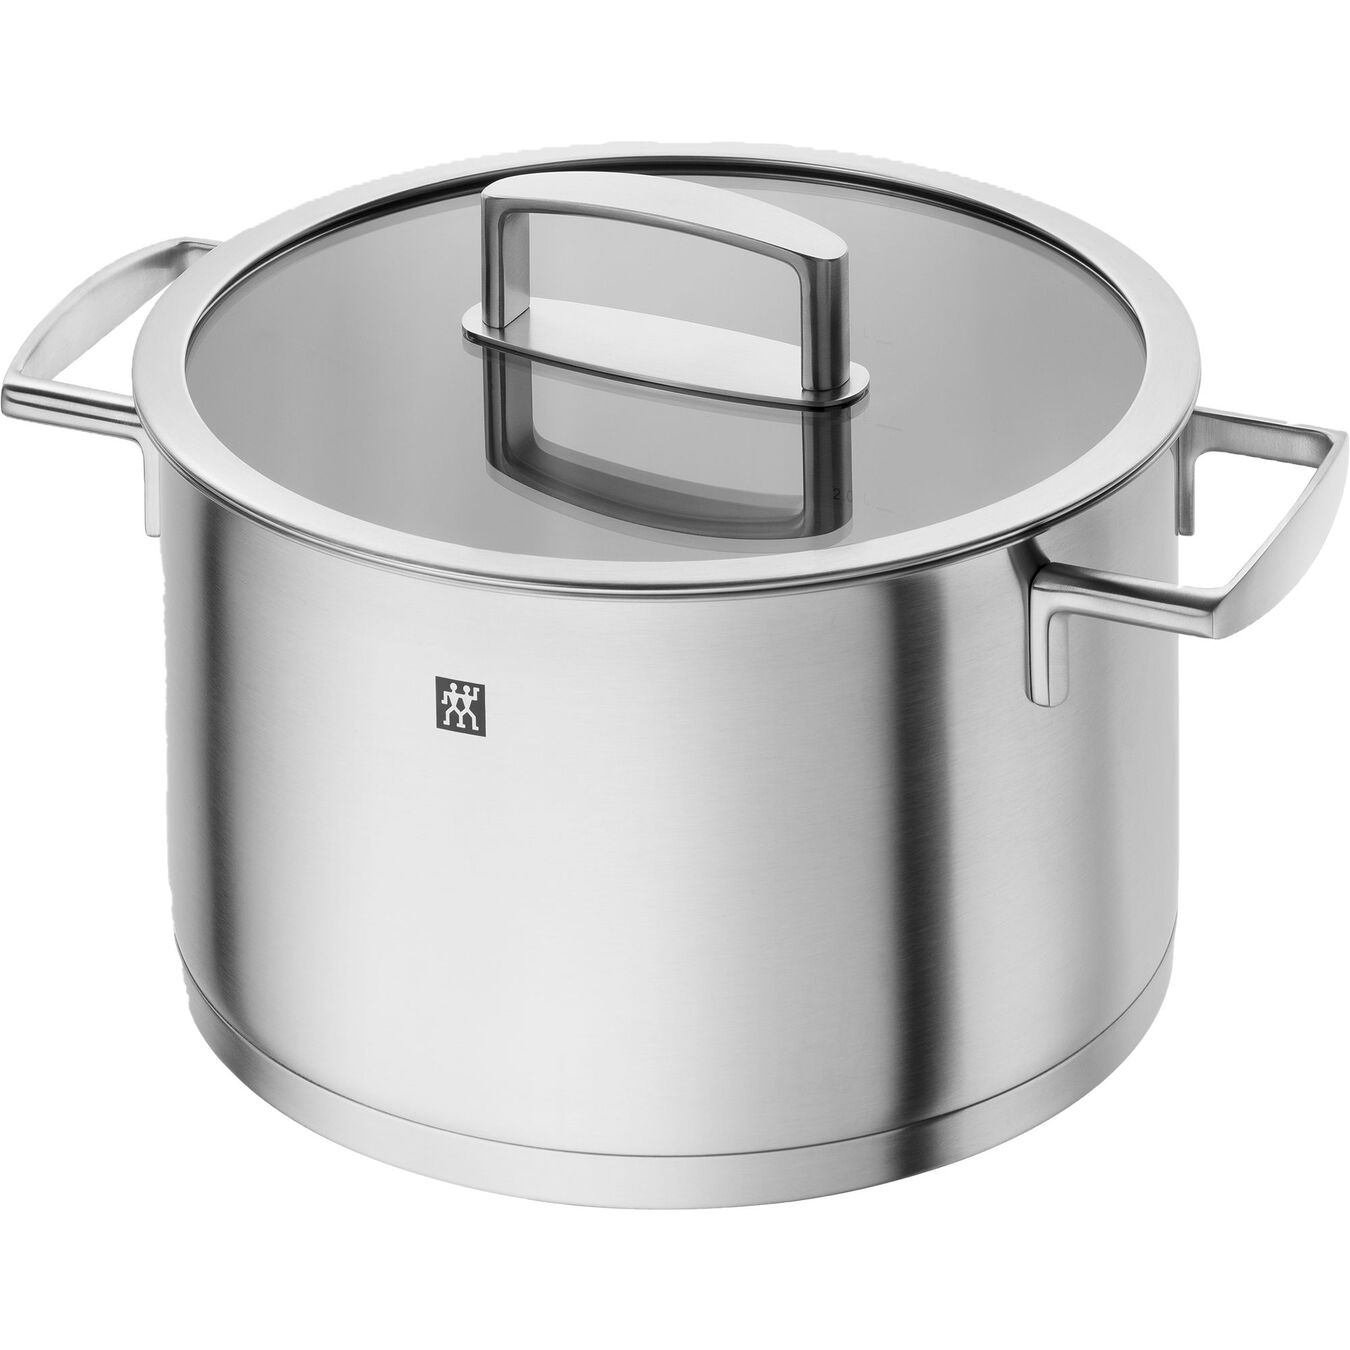 10 piece 18/10 STAINLESS STEEL cookware set,,large 6